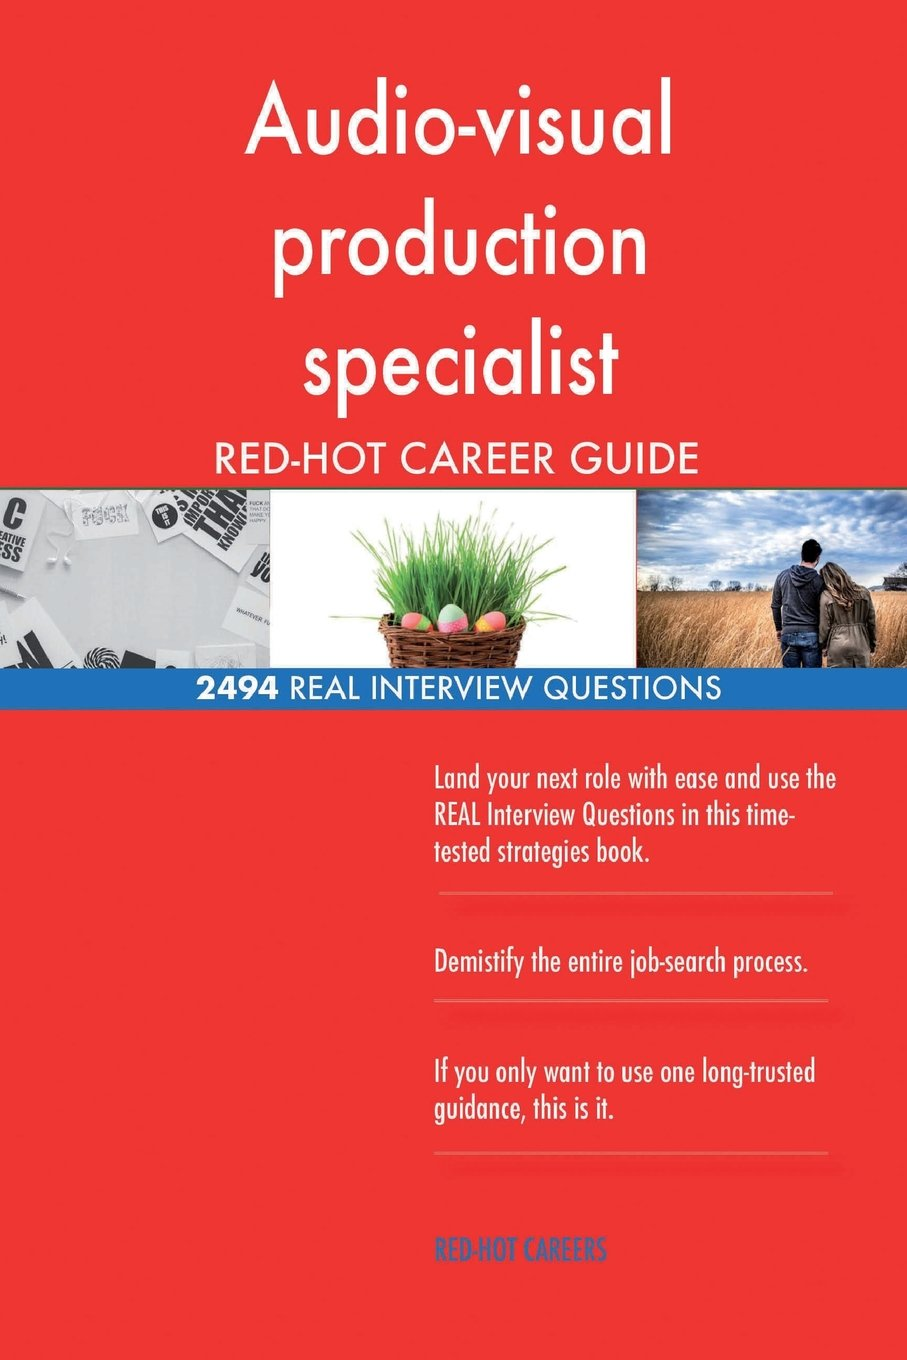 Audio-visual production specialist RED-HOT Career; 2494 REAL Interview Questions